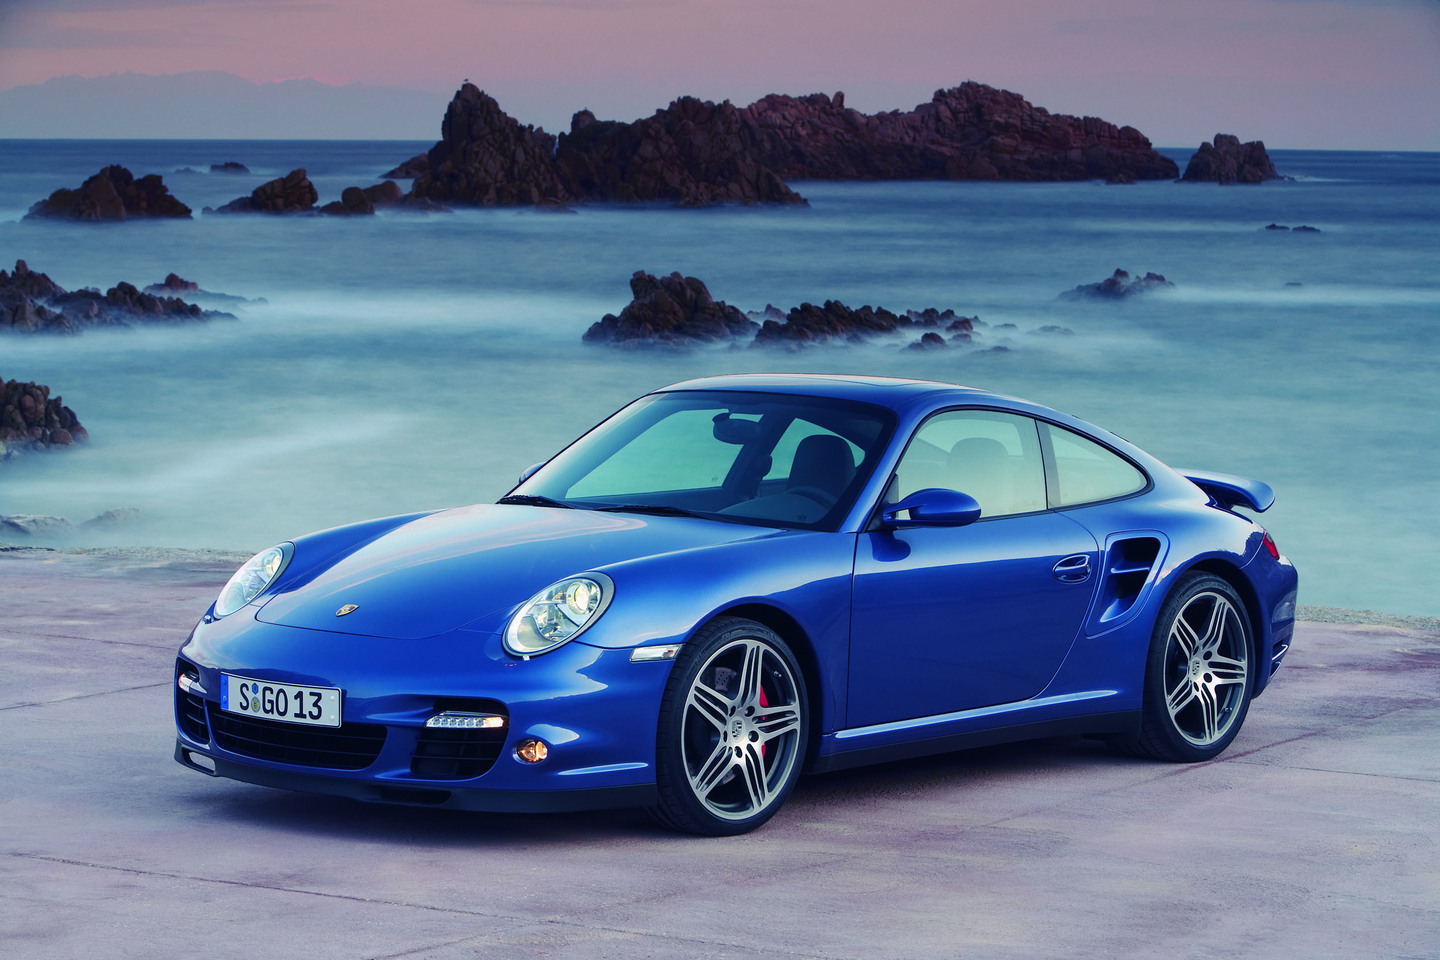 Porsche 911 turbo auto wallpapers groenlicht be